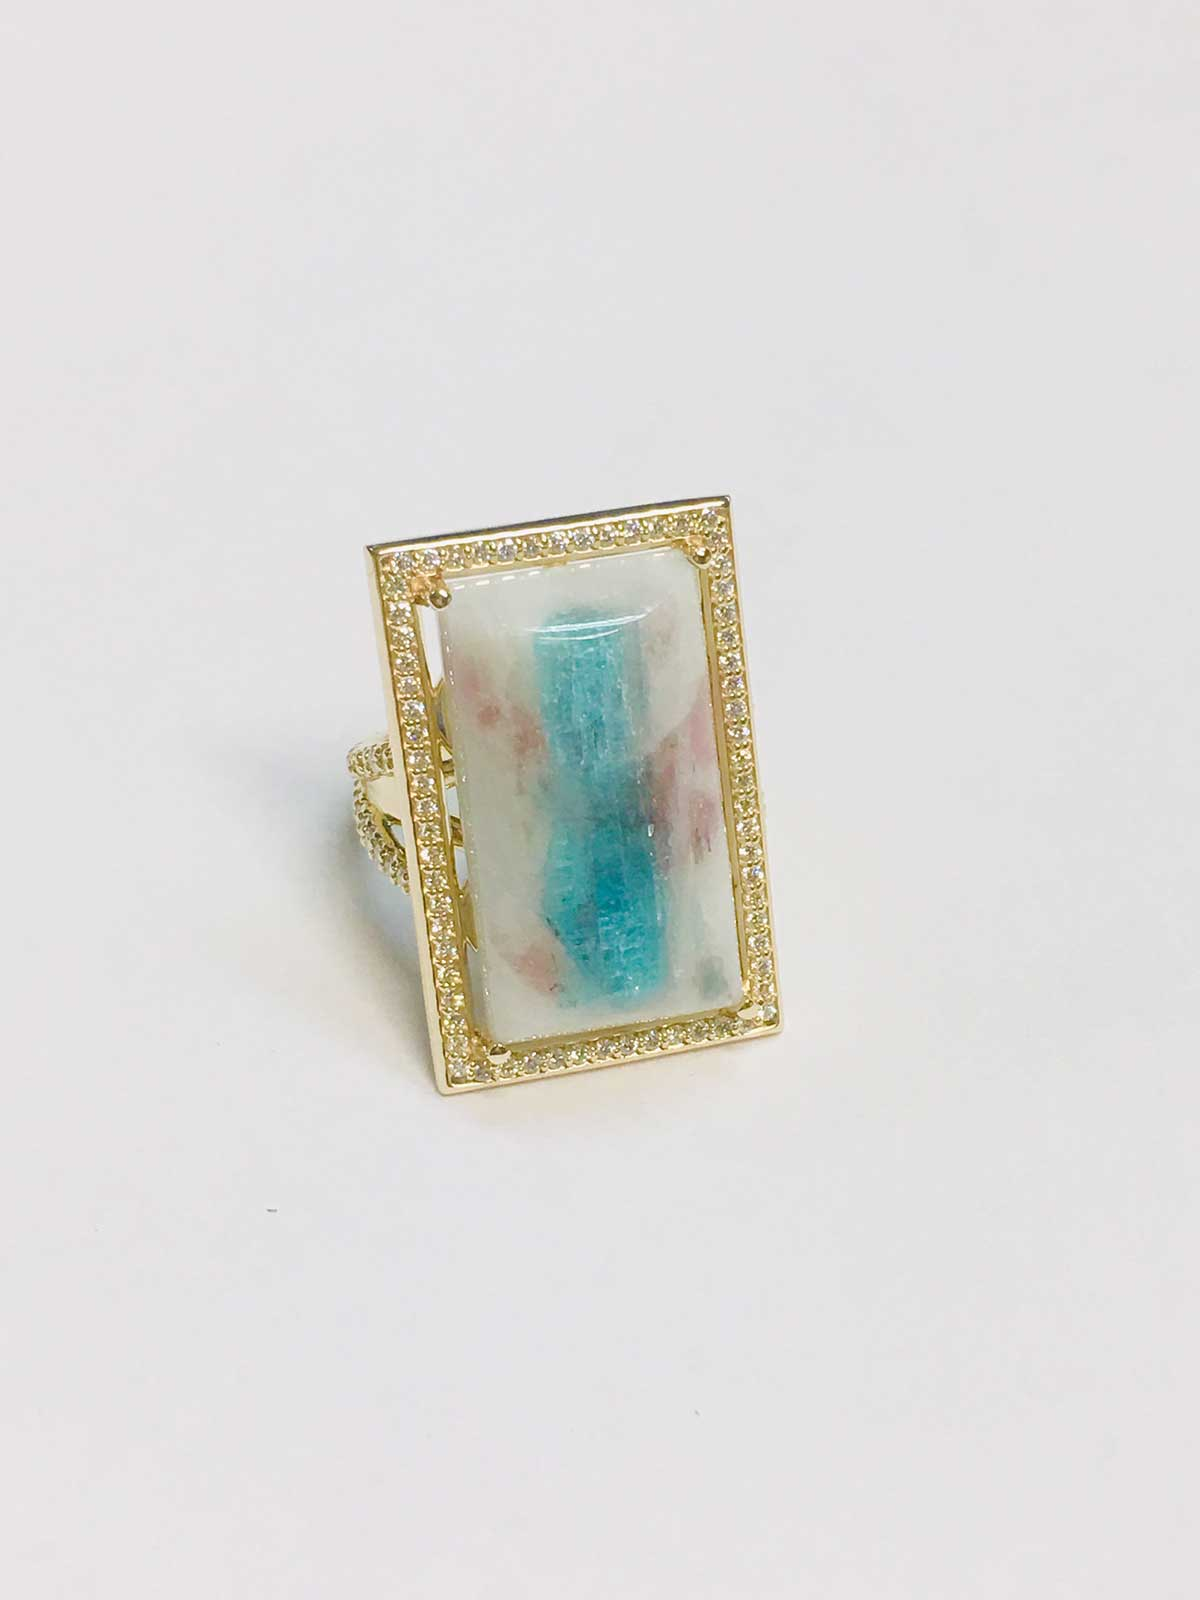 A dramatic and feminine, 14k yellow gold ring framing a rare, Cabachon-cut, Paraiba Blue Tourmaline crystal with pink Tourmaline crystals in white Quartz. Pave-set Diamonds form the border